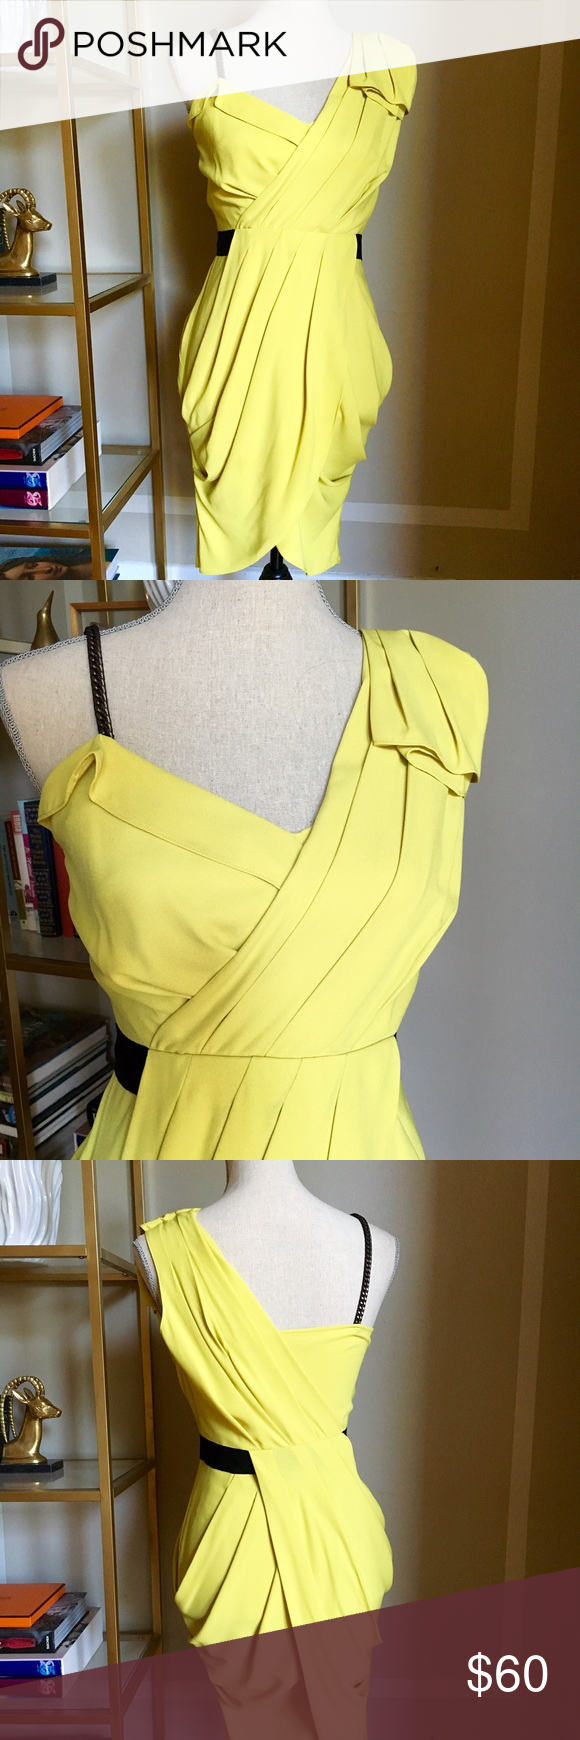 Rachel roy yellow cocktail dress this is the absolute chicest rachel